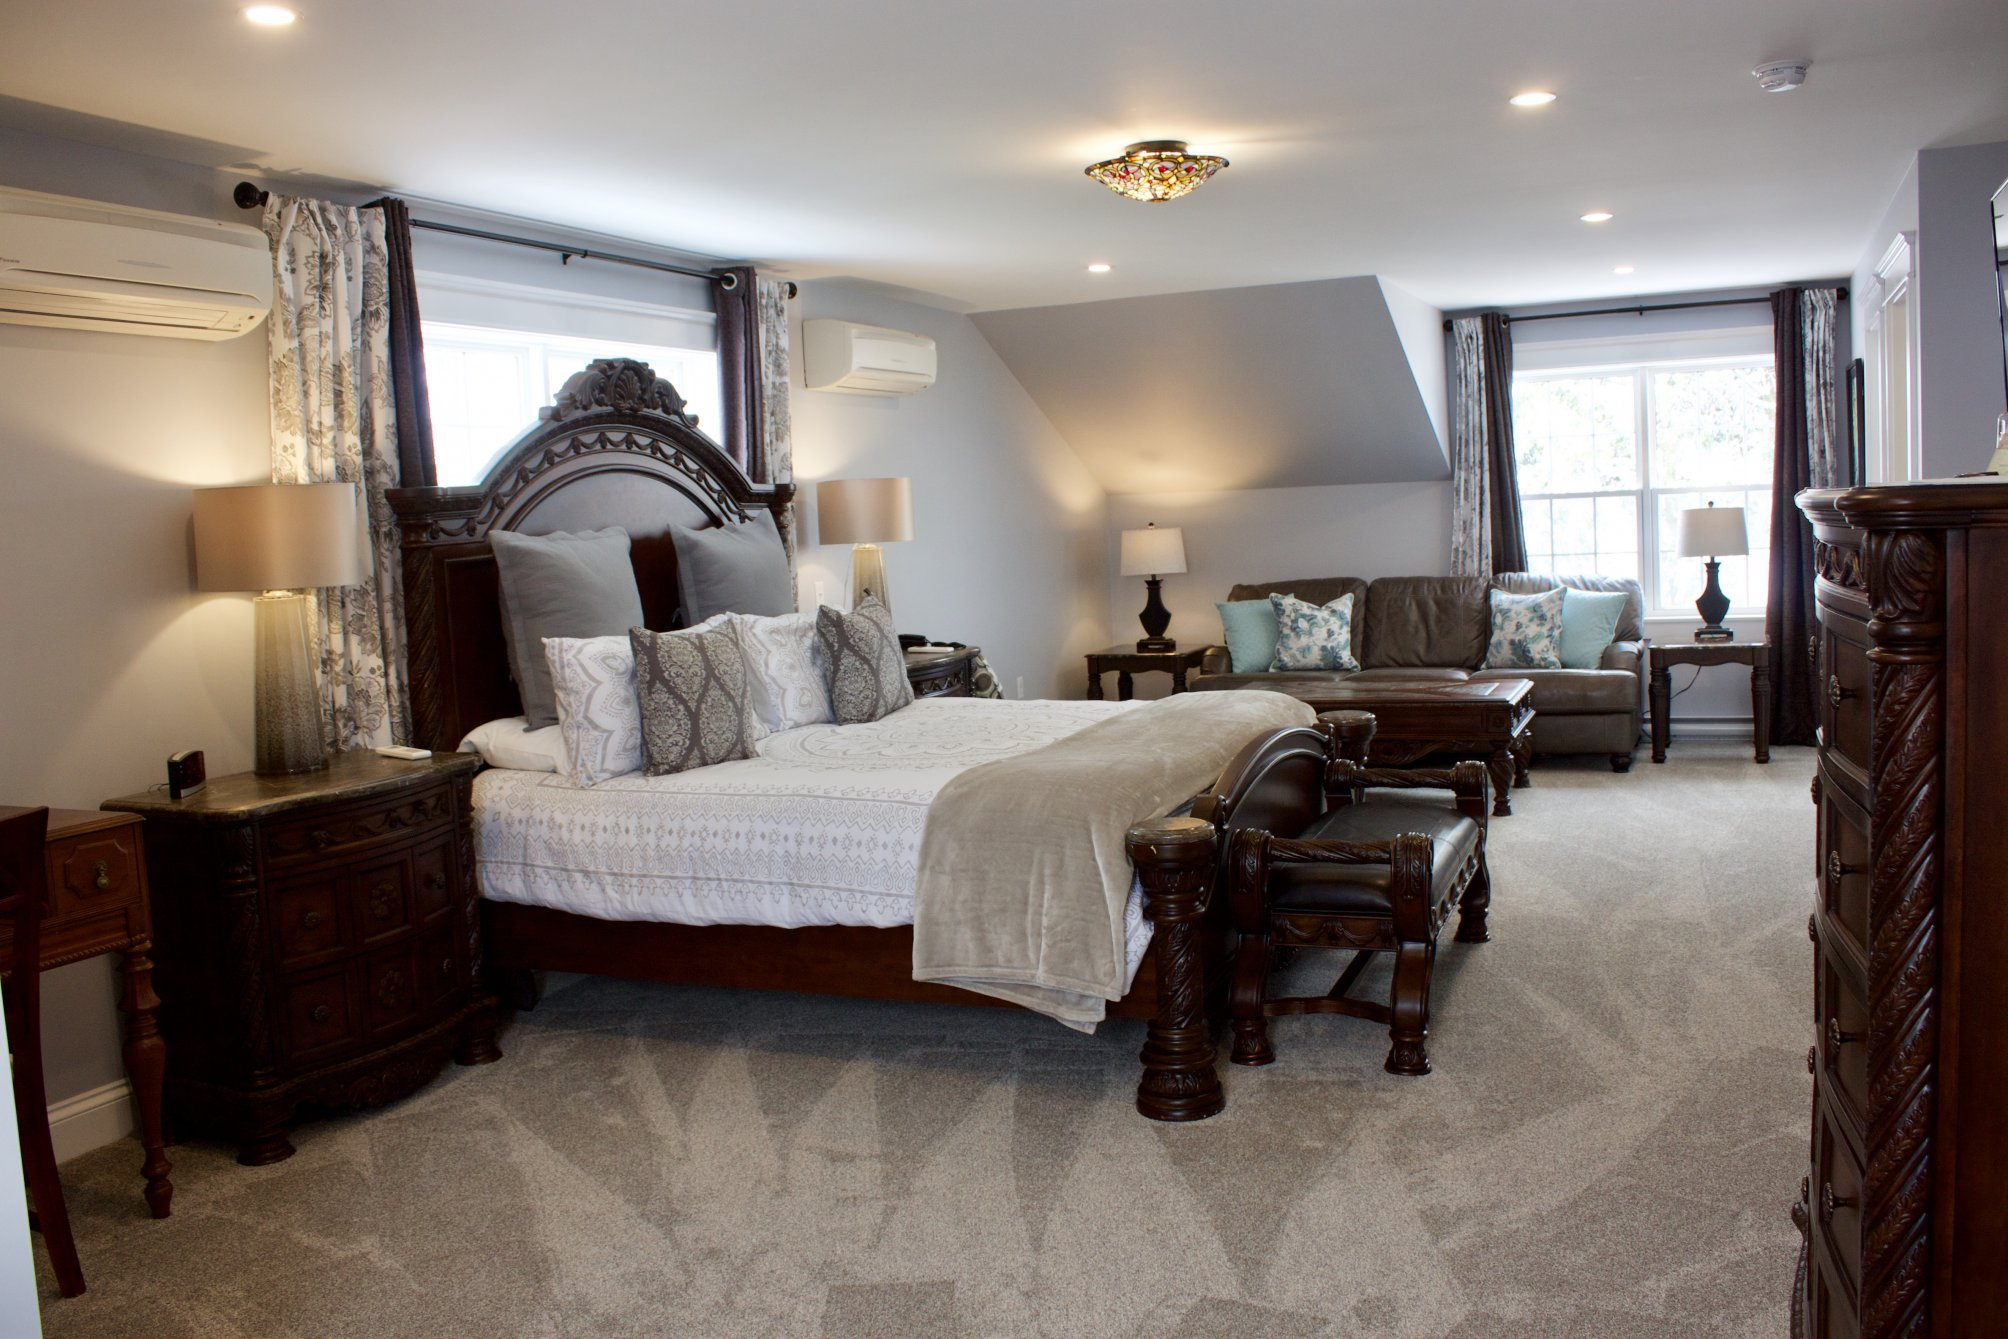 The Harwood Suite at Tattingstone Inn